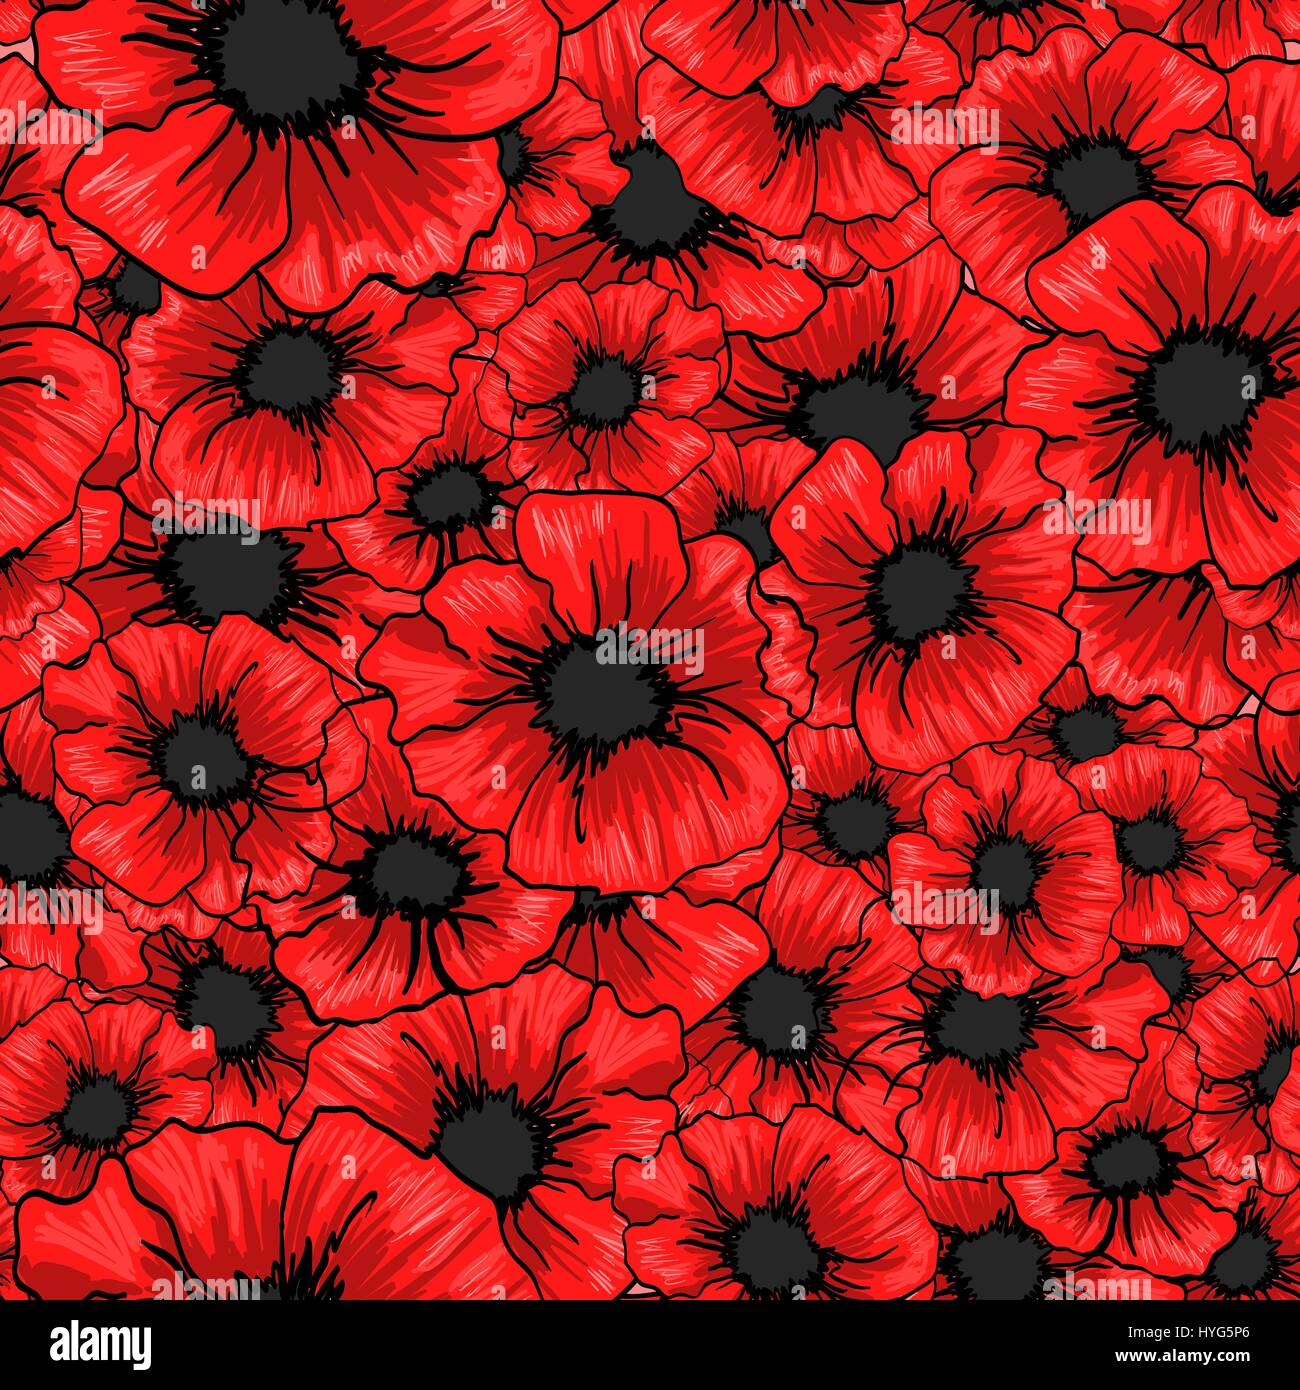 Red poppy flower seamless pattern for fabric textile design stock red poppy flower seamless pattern for fabric textile design mightylinksfo